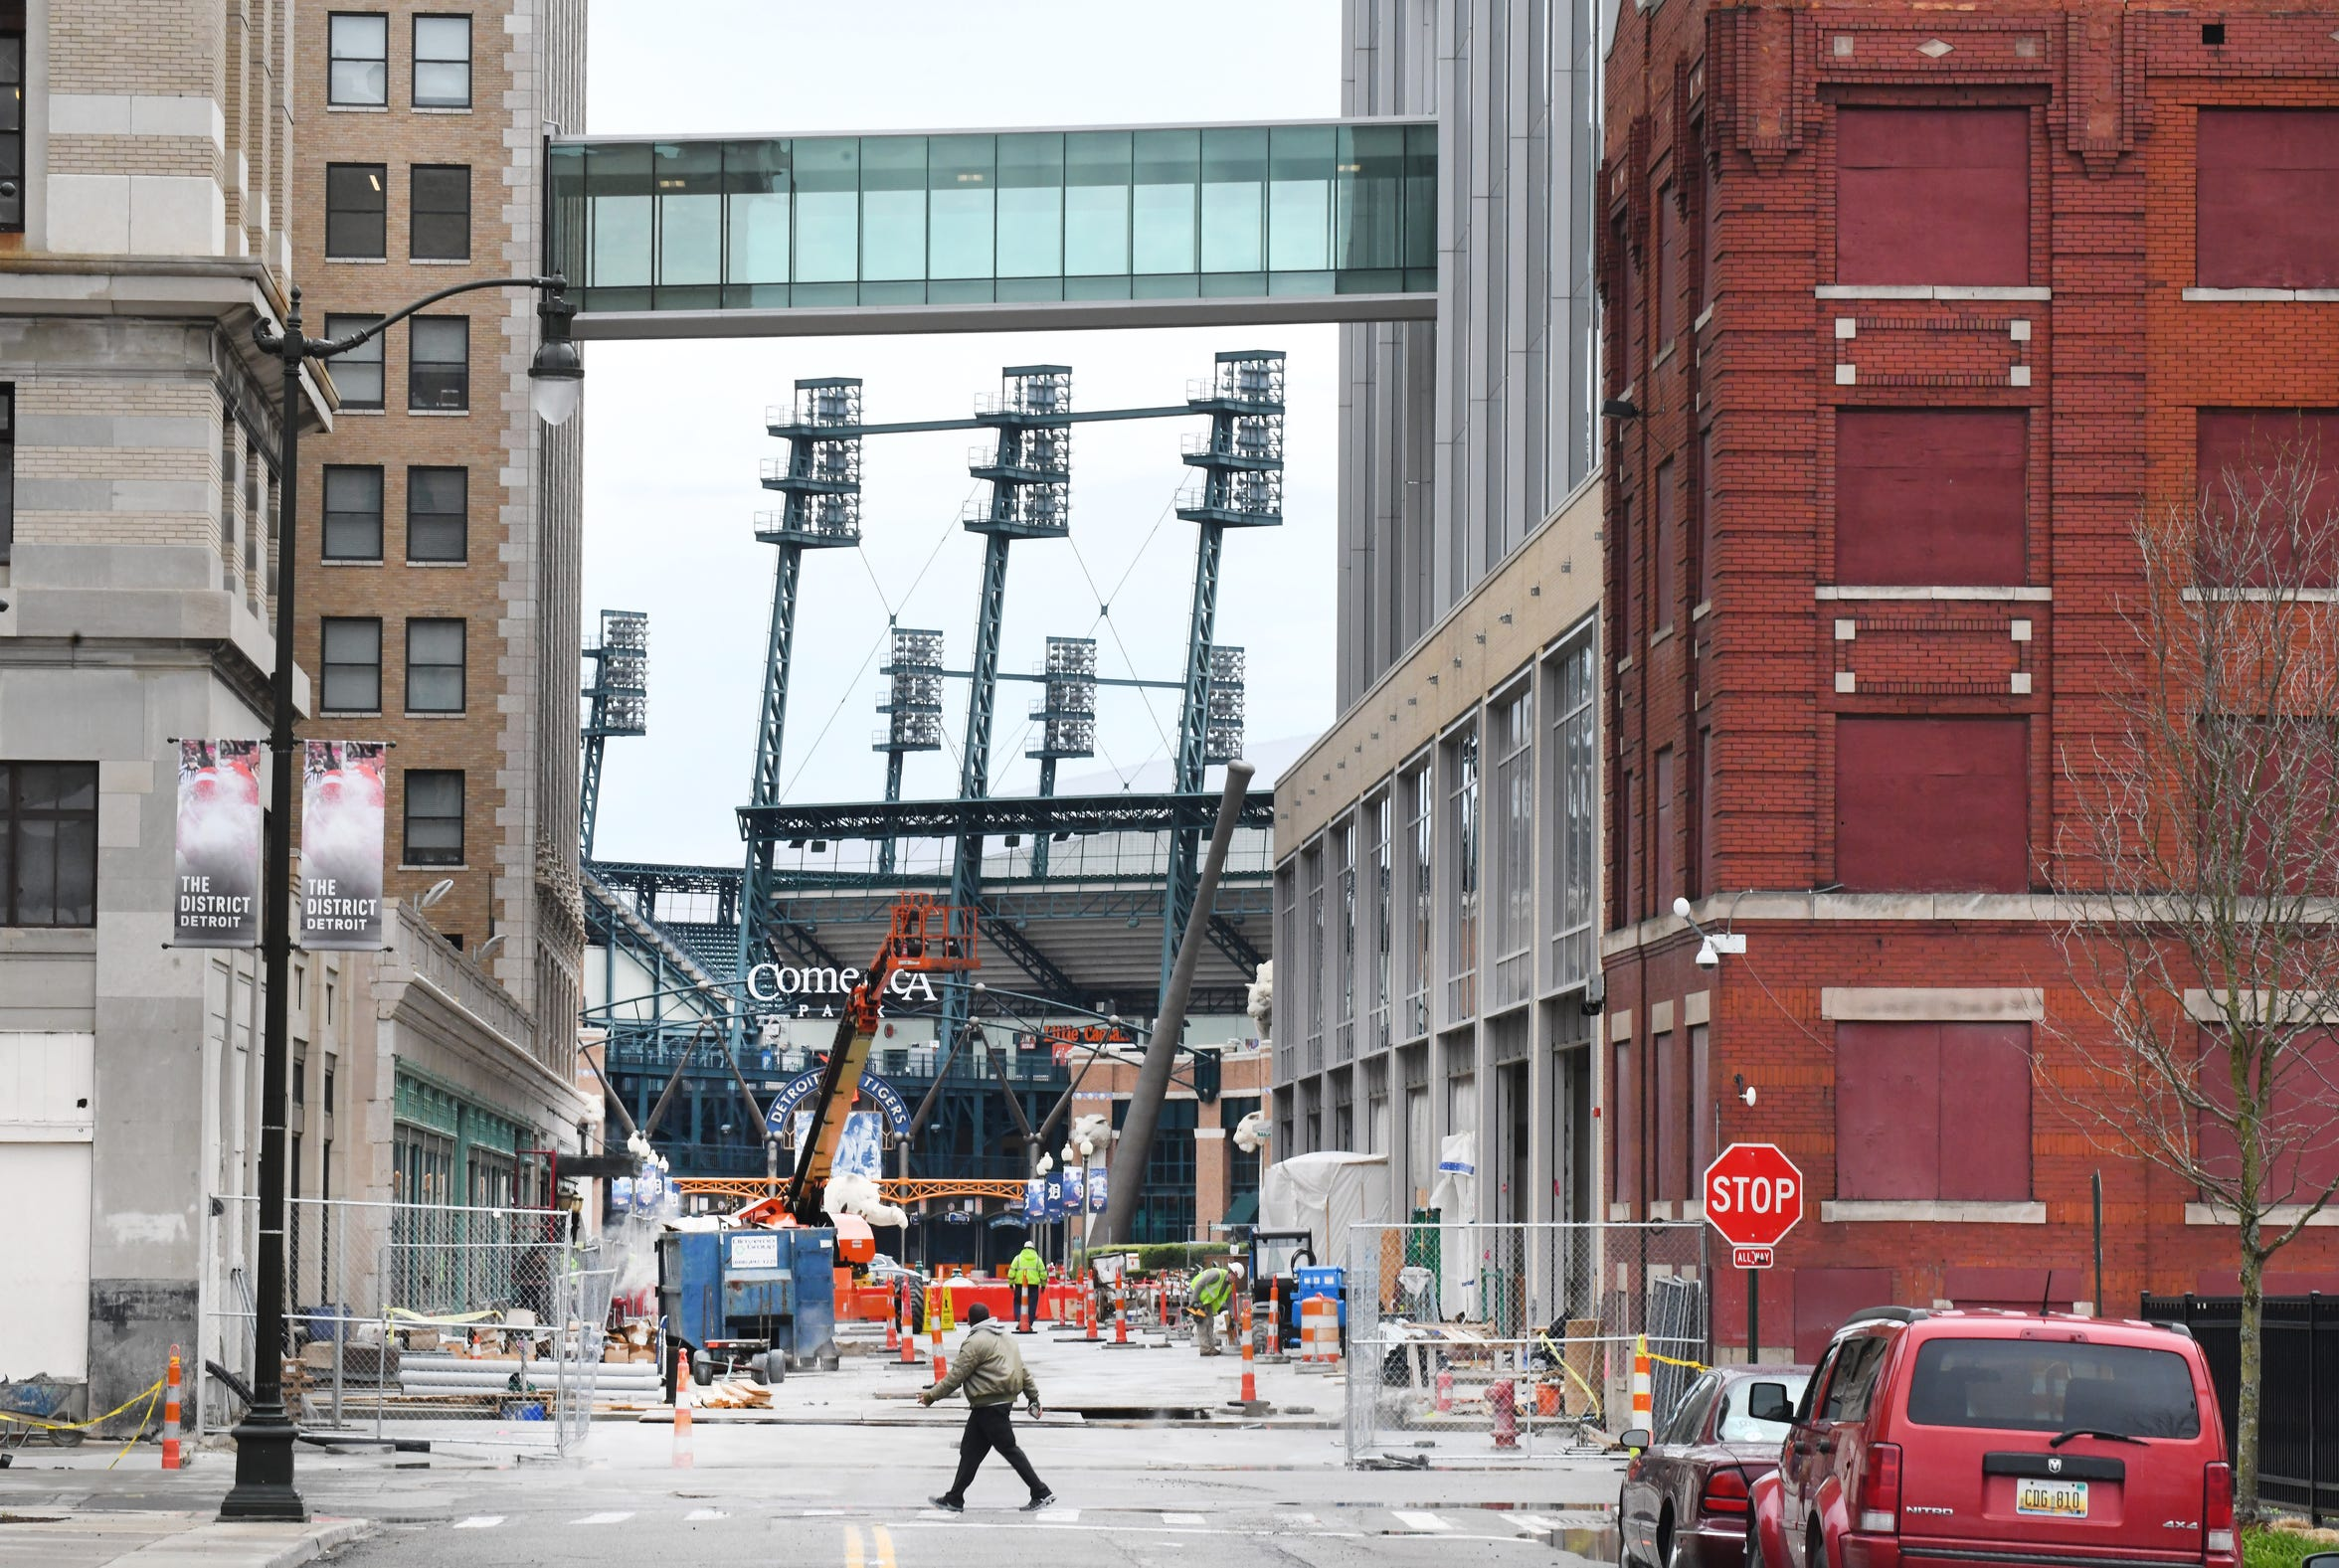 A pedestrian walkway links Fox Theatre and the future Little Caesars headquarters. Comerica Park is in the background. In the foreground are two empty buildings owned by Ilitch-linked entities.